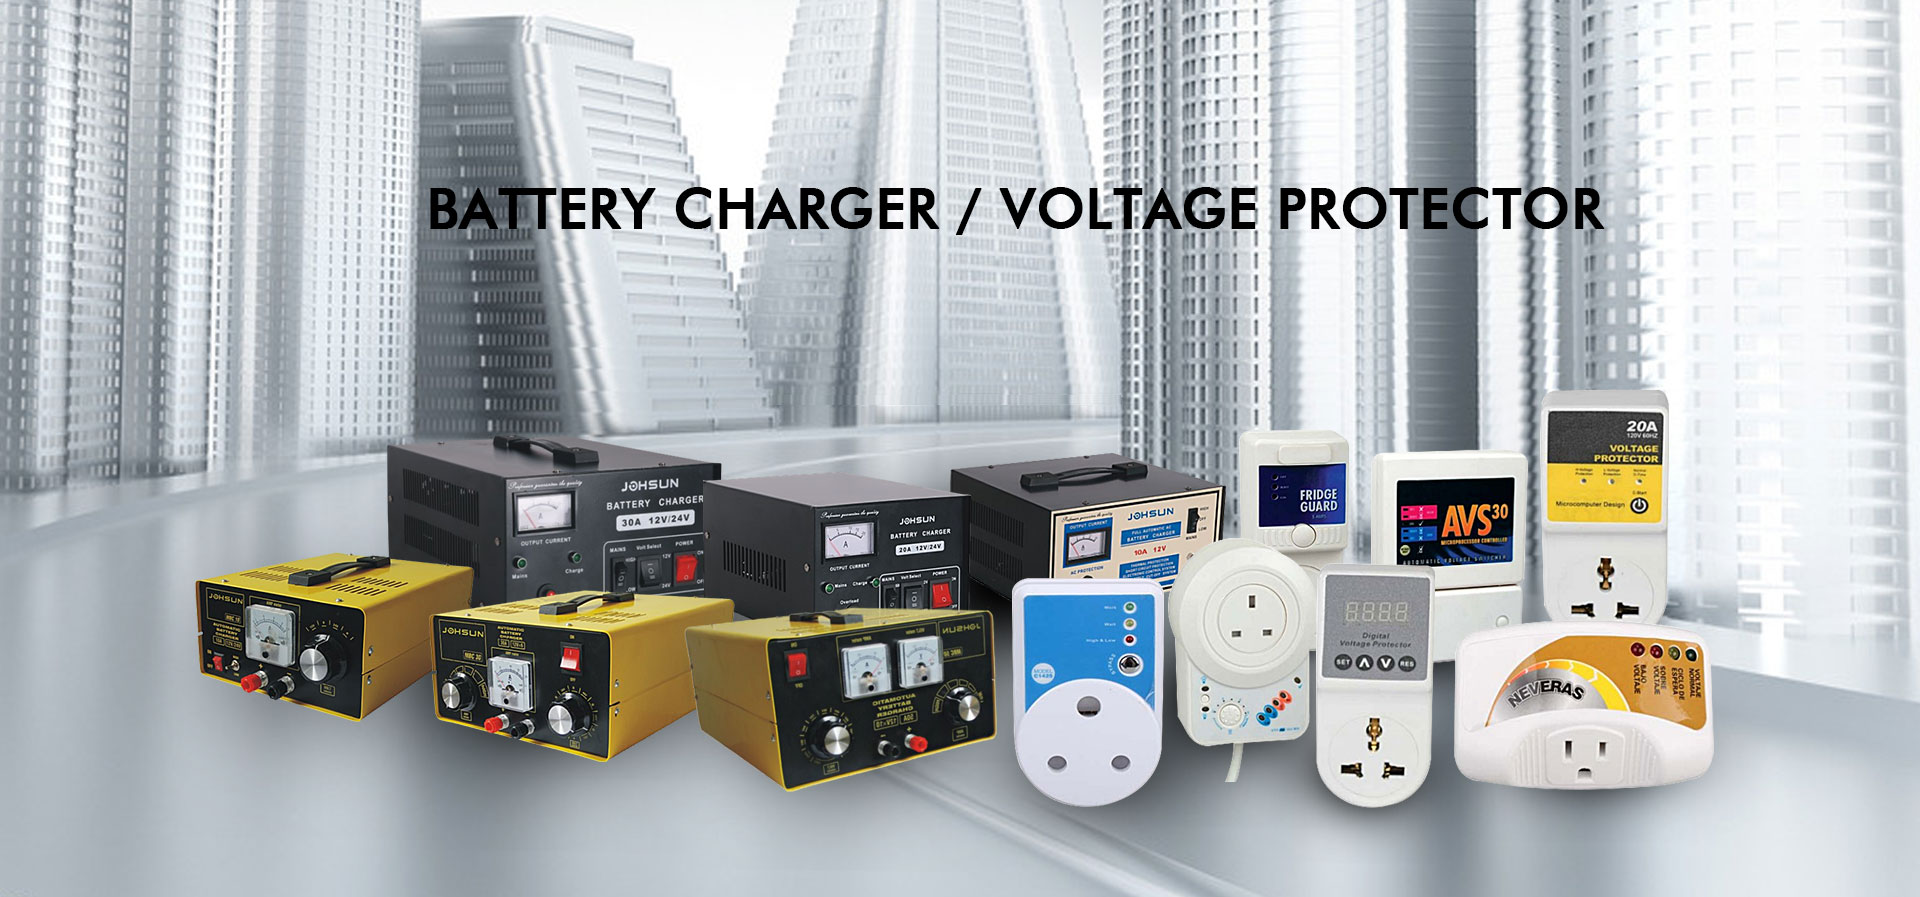 battery charger voltage protector